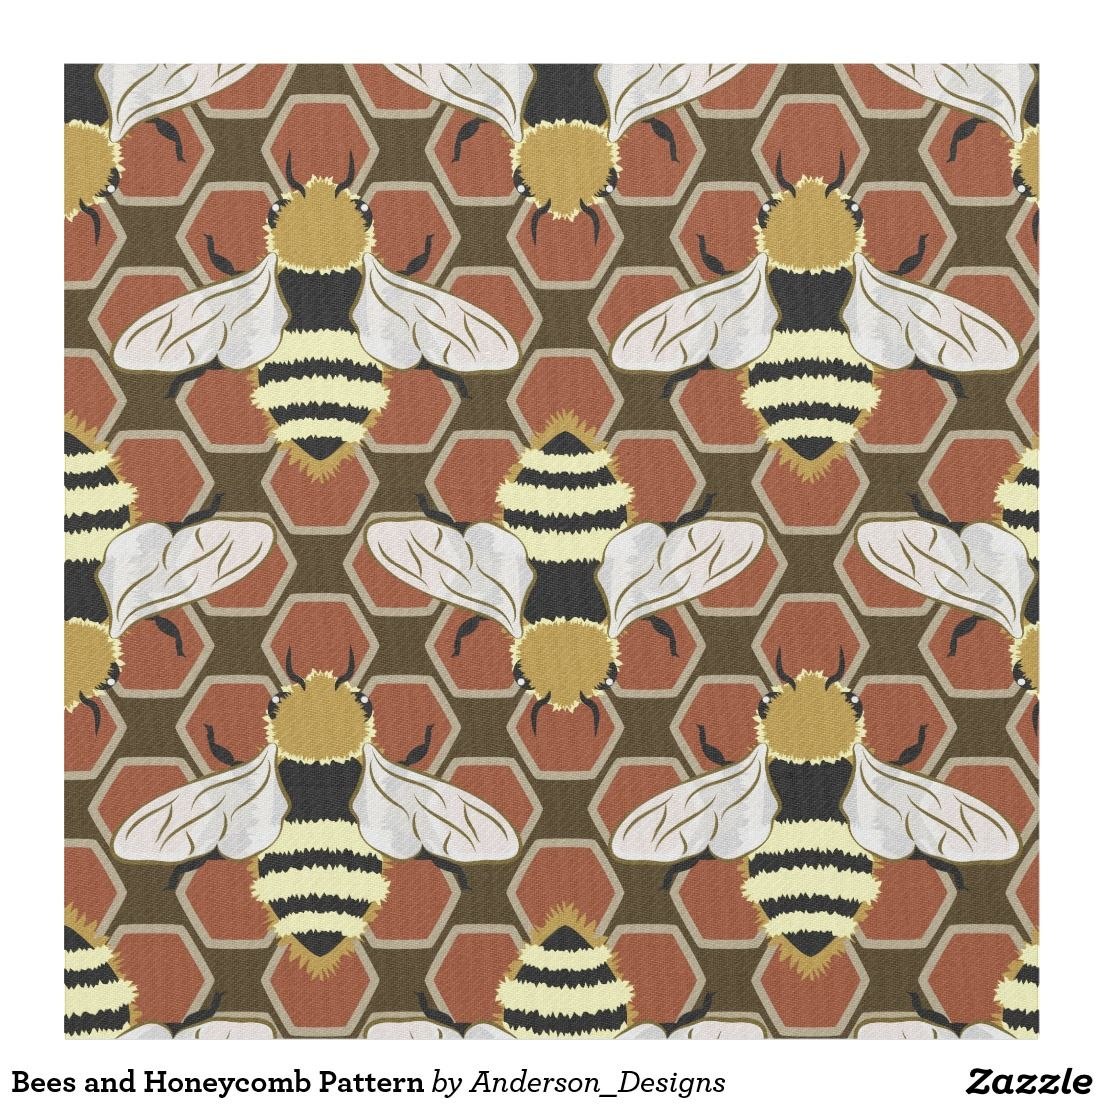 Bees and Honeycomb Pattern Fabric by @andersondesigns #fabric #sewing